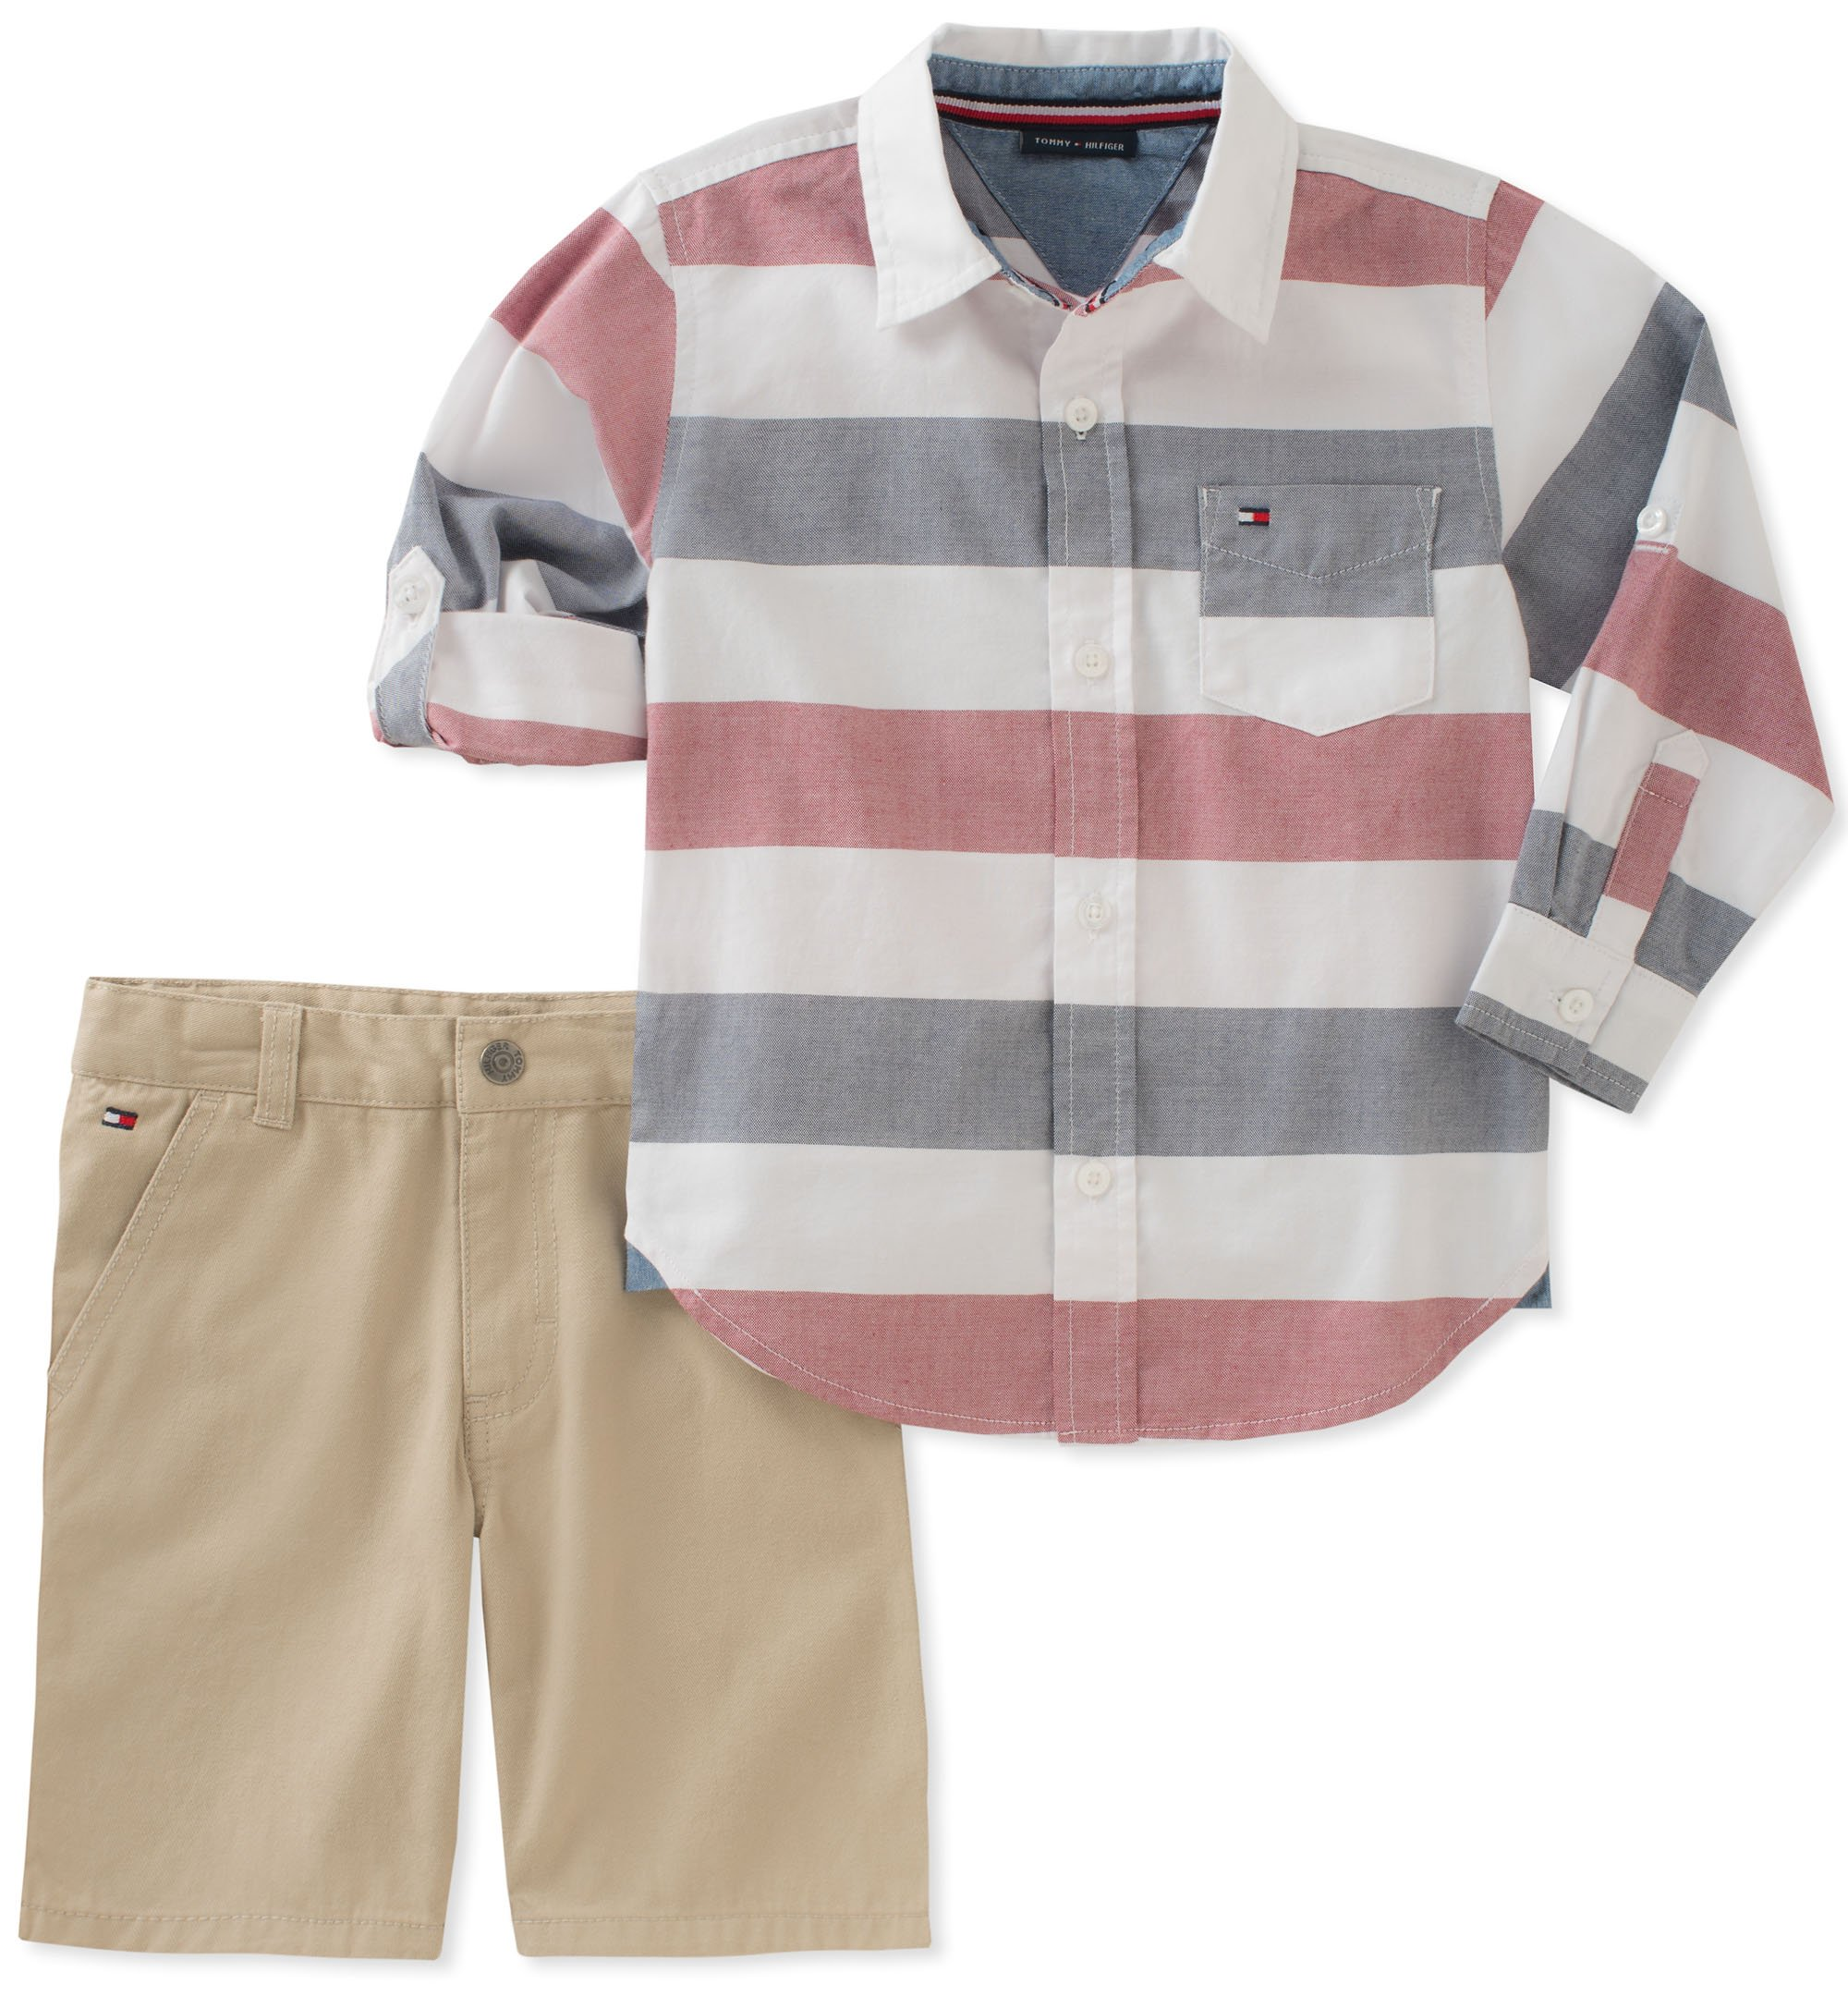 Tommy Hilfiger Boys' Toddler 2 Pieces Long Sleeves Shirt Shorts Set, Blue/White, 4T